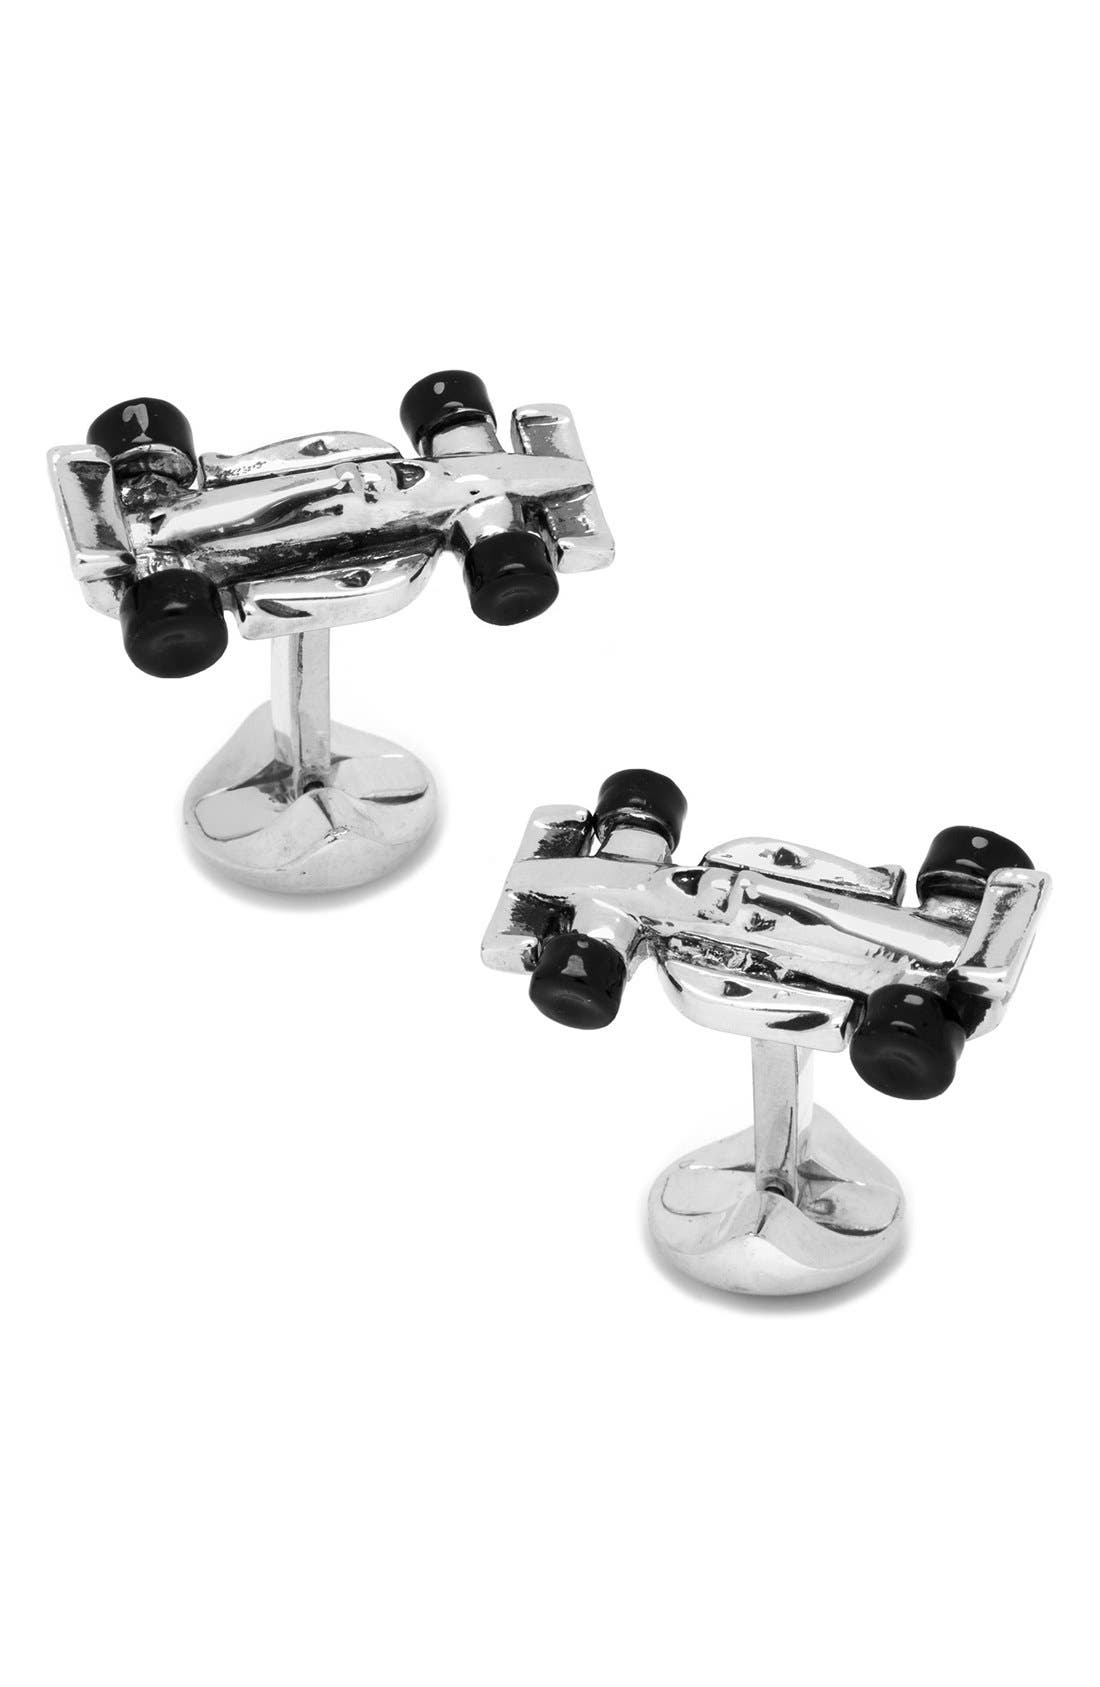 Racecar Cuff Links,                         Main,                         color, Silver